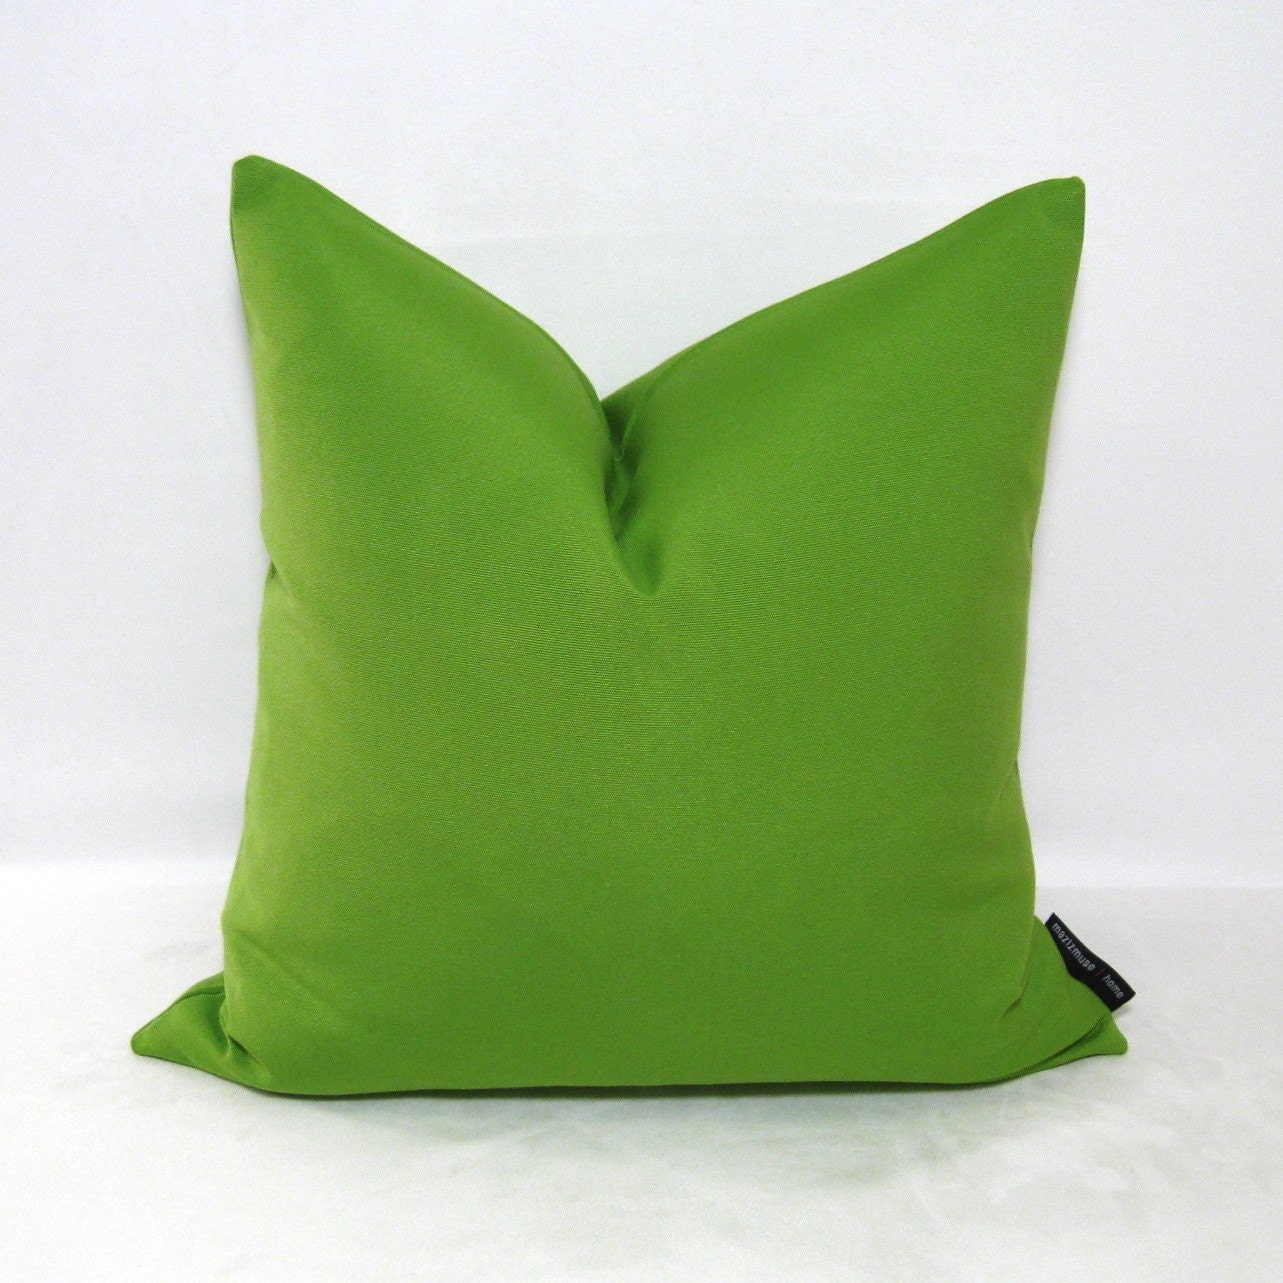 Decorative Pillow Green : Green Pillow Cover Decorative Cushion Outdoor by Mazizmuse